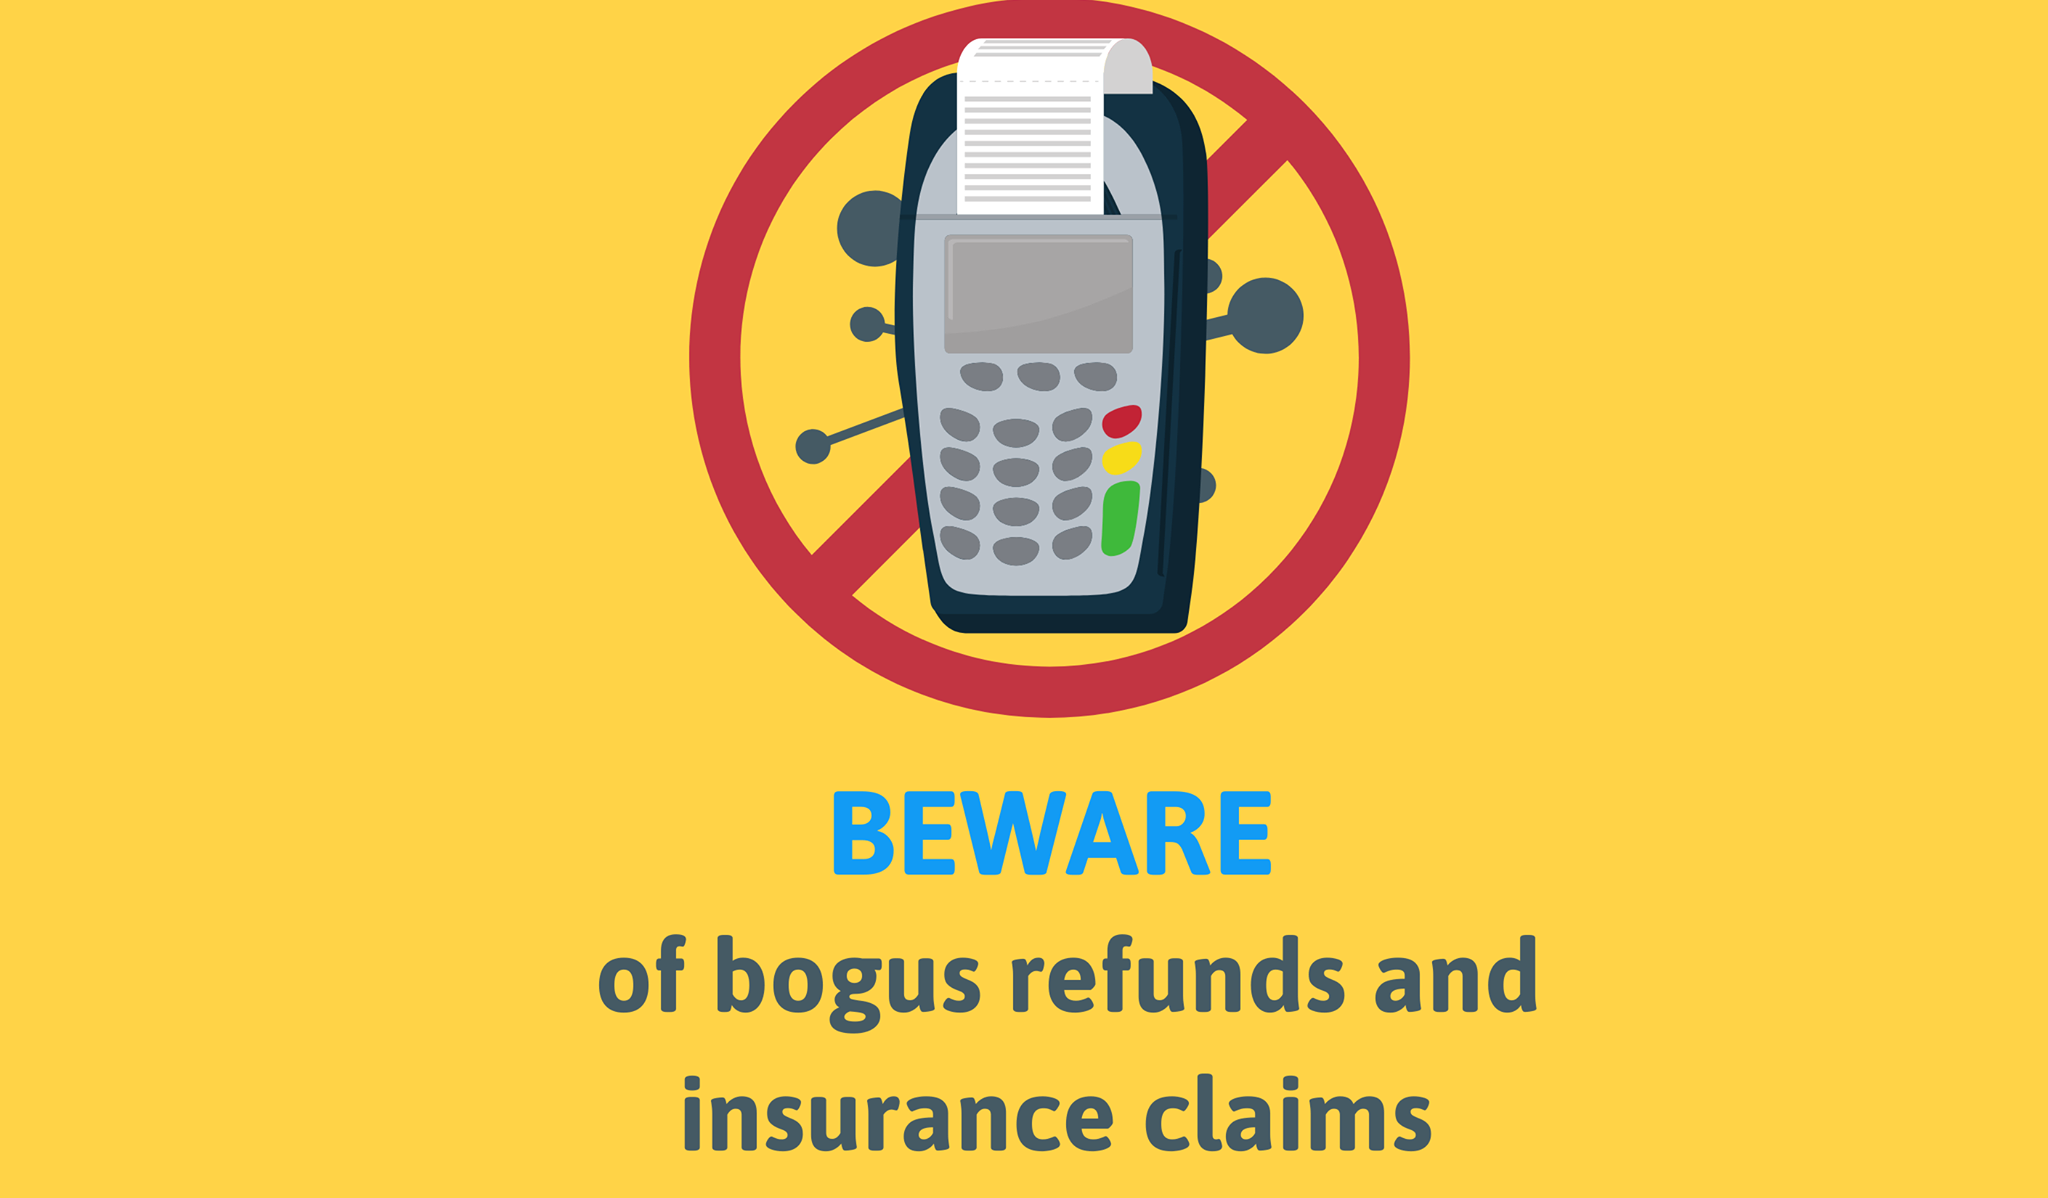 Beware of bogus travel refunds and insurance claims